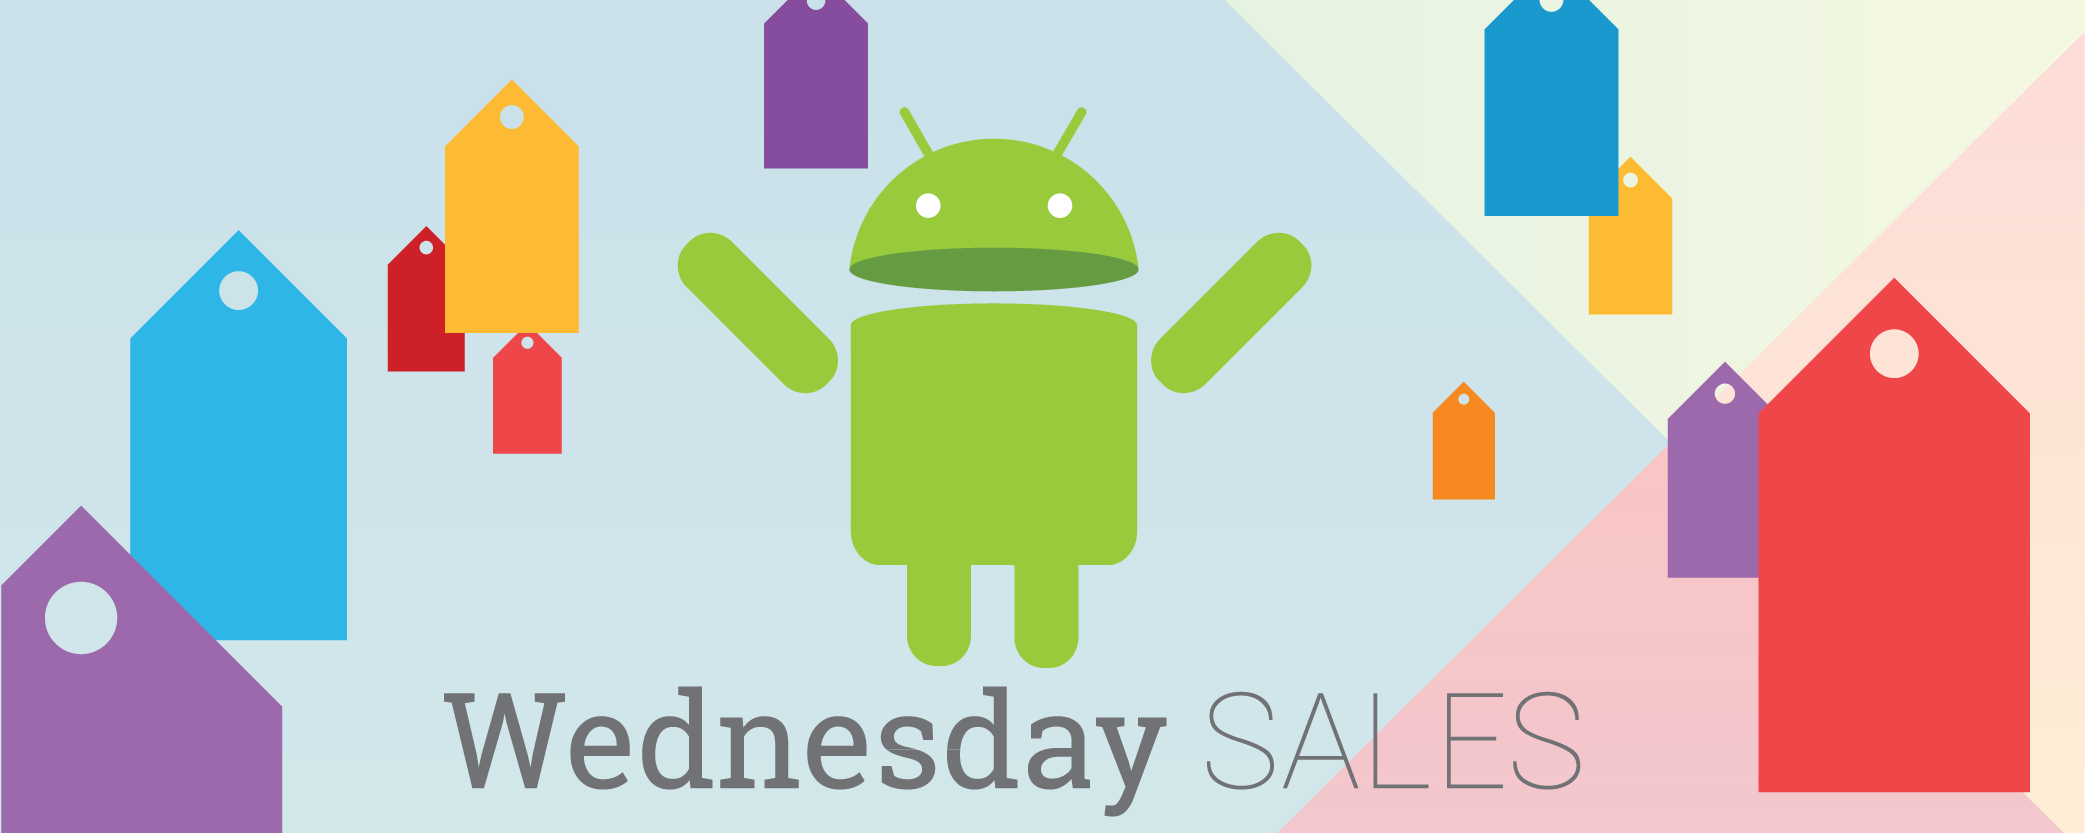 12 temporarily free and 27 on-sale apps and games for Wednesday